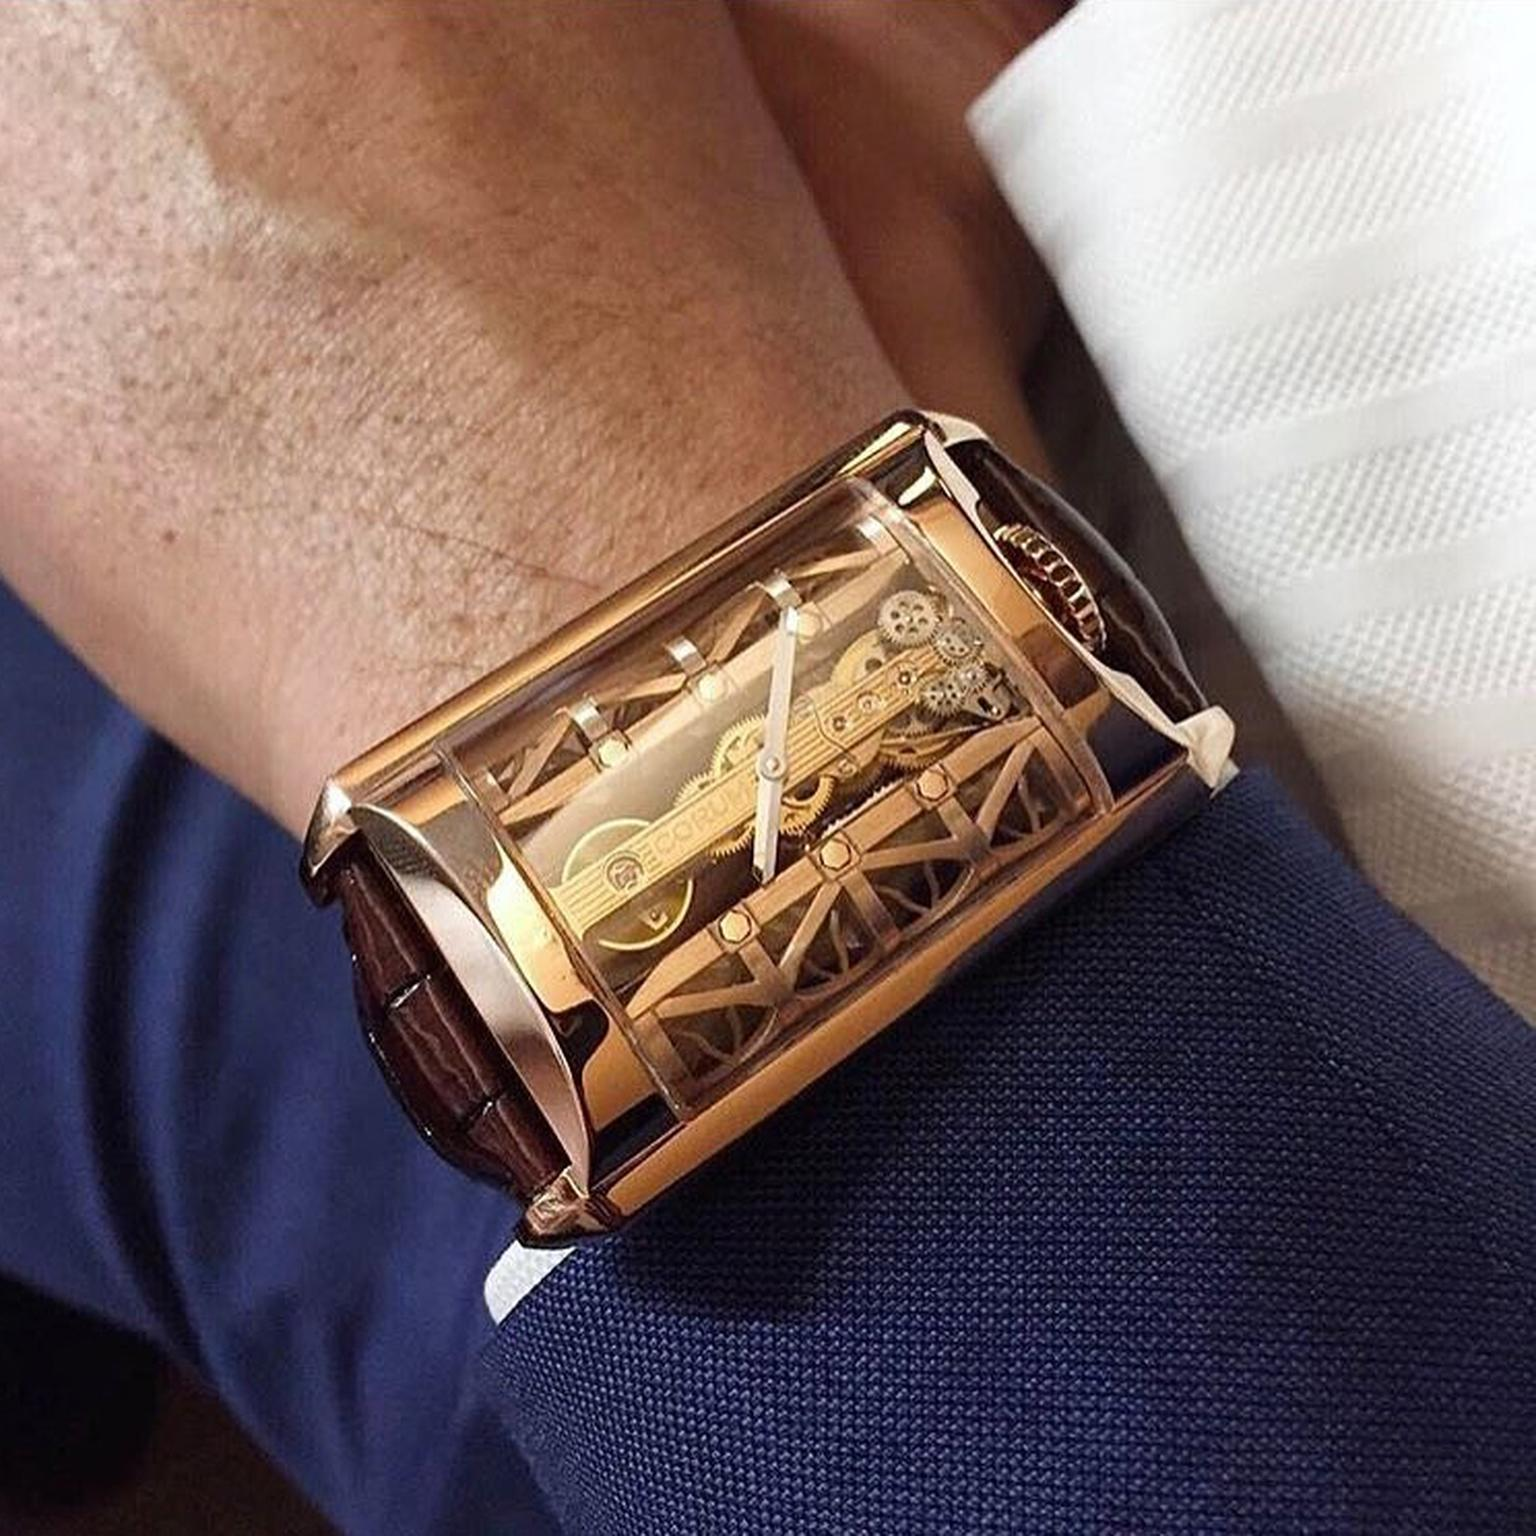 Corum Golden Bridge Stream watch on wrist